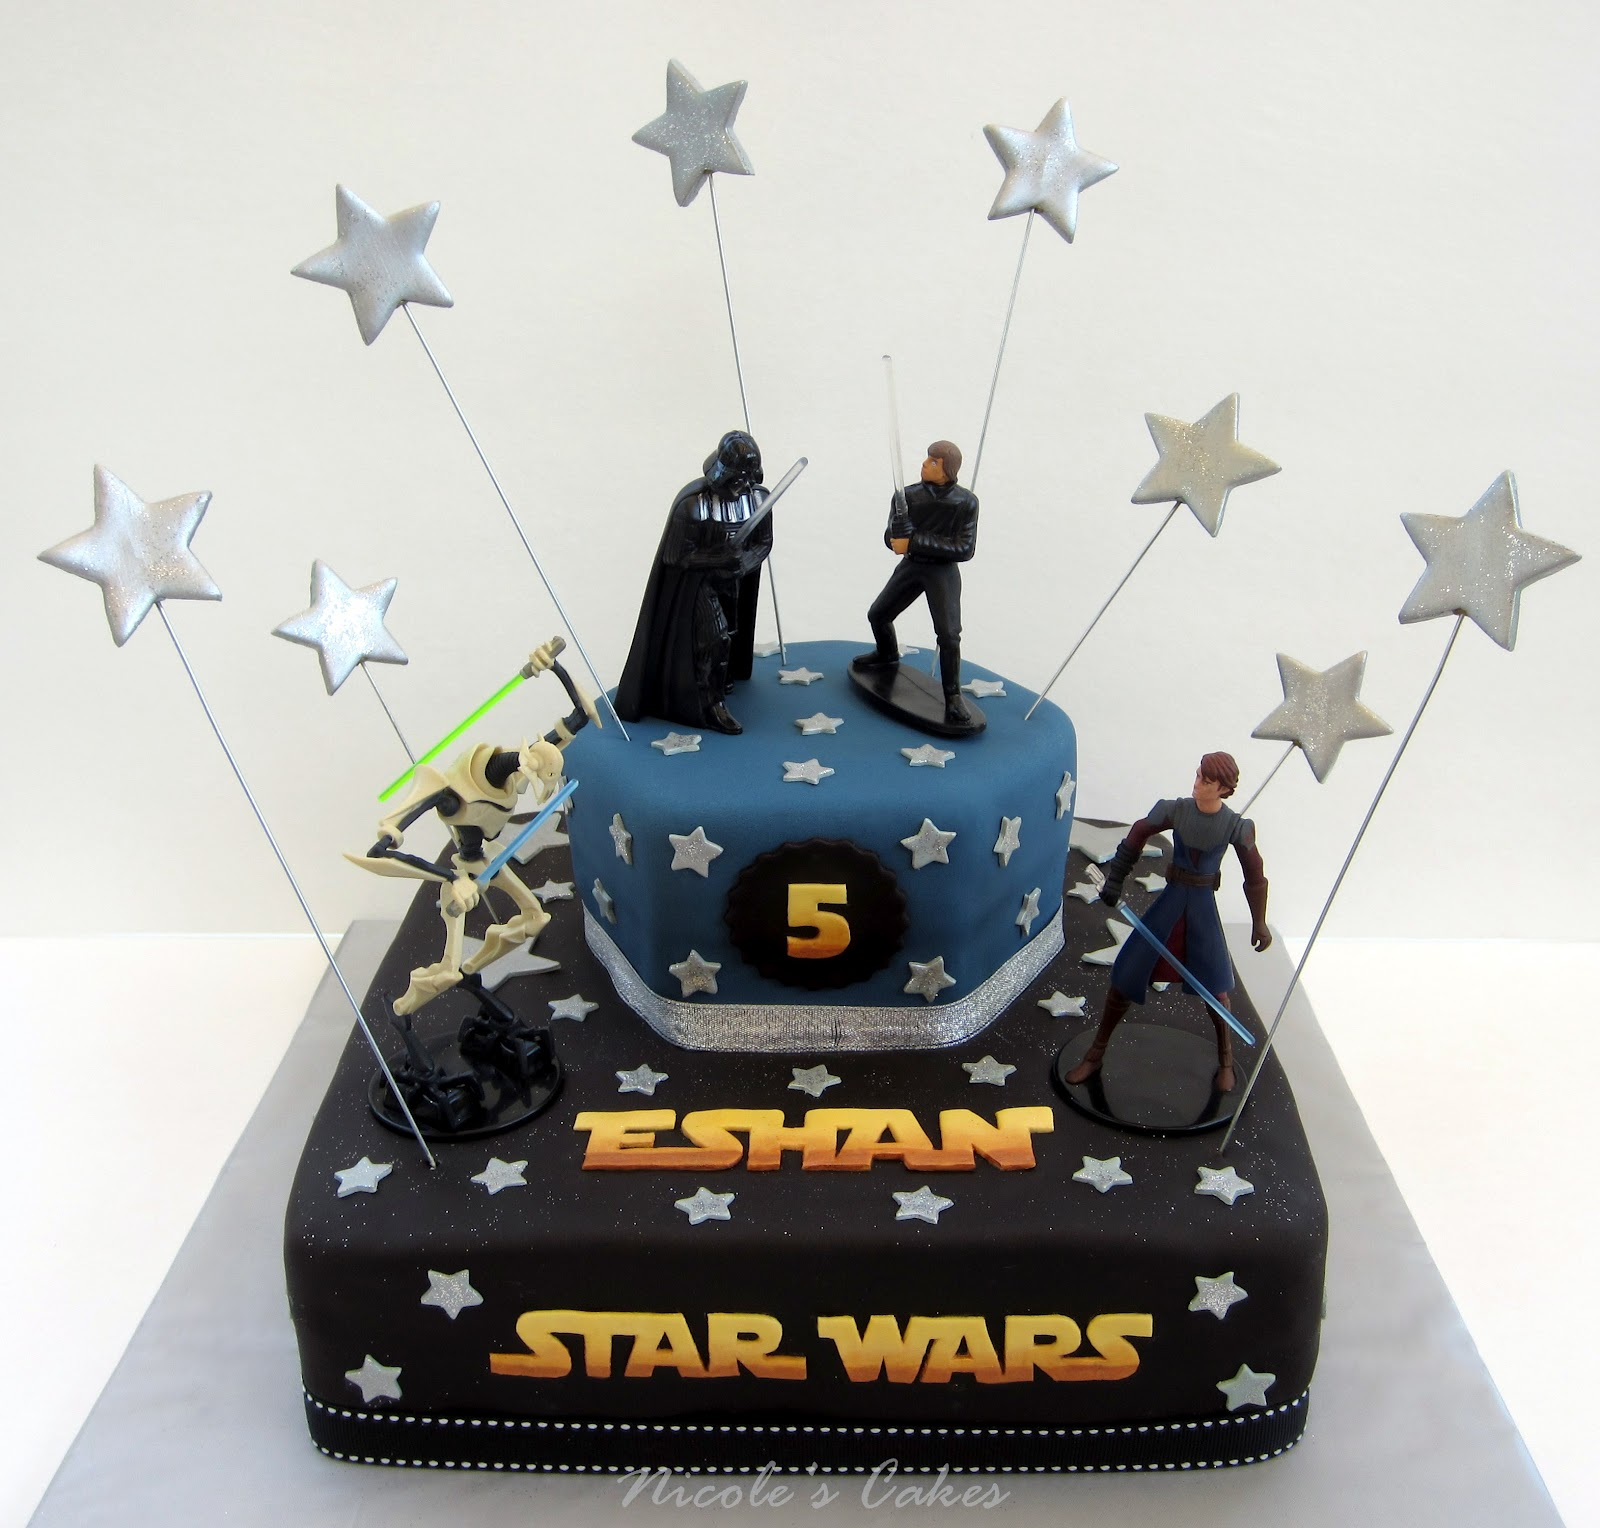 Images Of A Star Wars Cake : On Birthday Cakes:  May the force be with you ... A Star ...